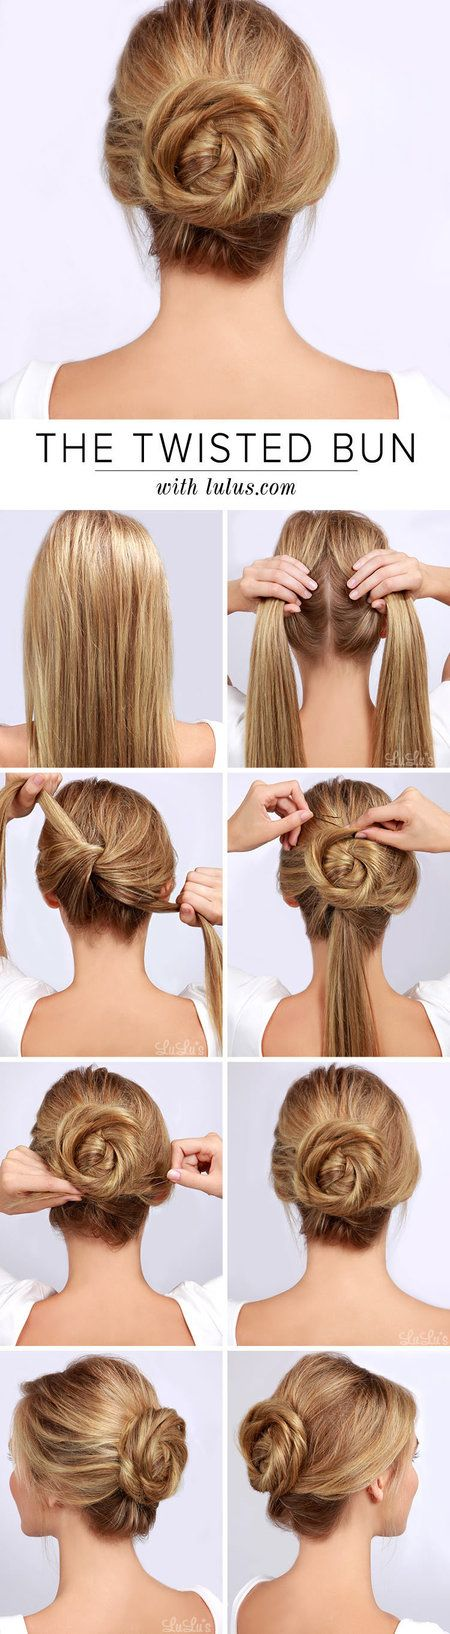 This is an adorable spiral twisty bun that looks really easy to do. It's a great twist on the traditional bun! Let og nem knold.